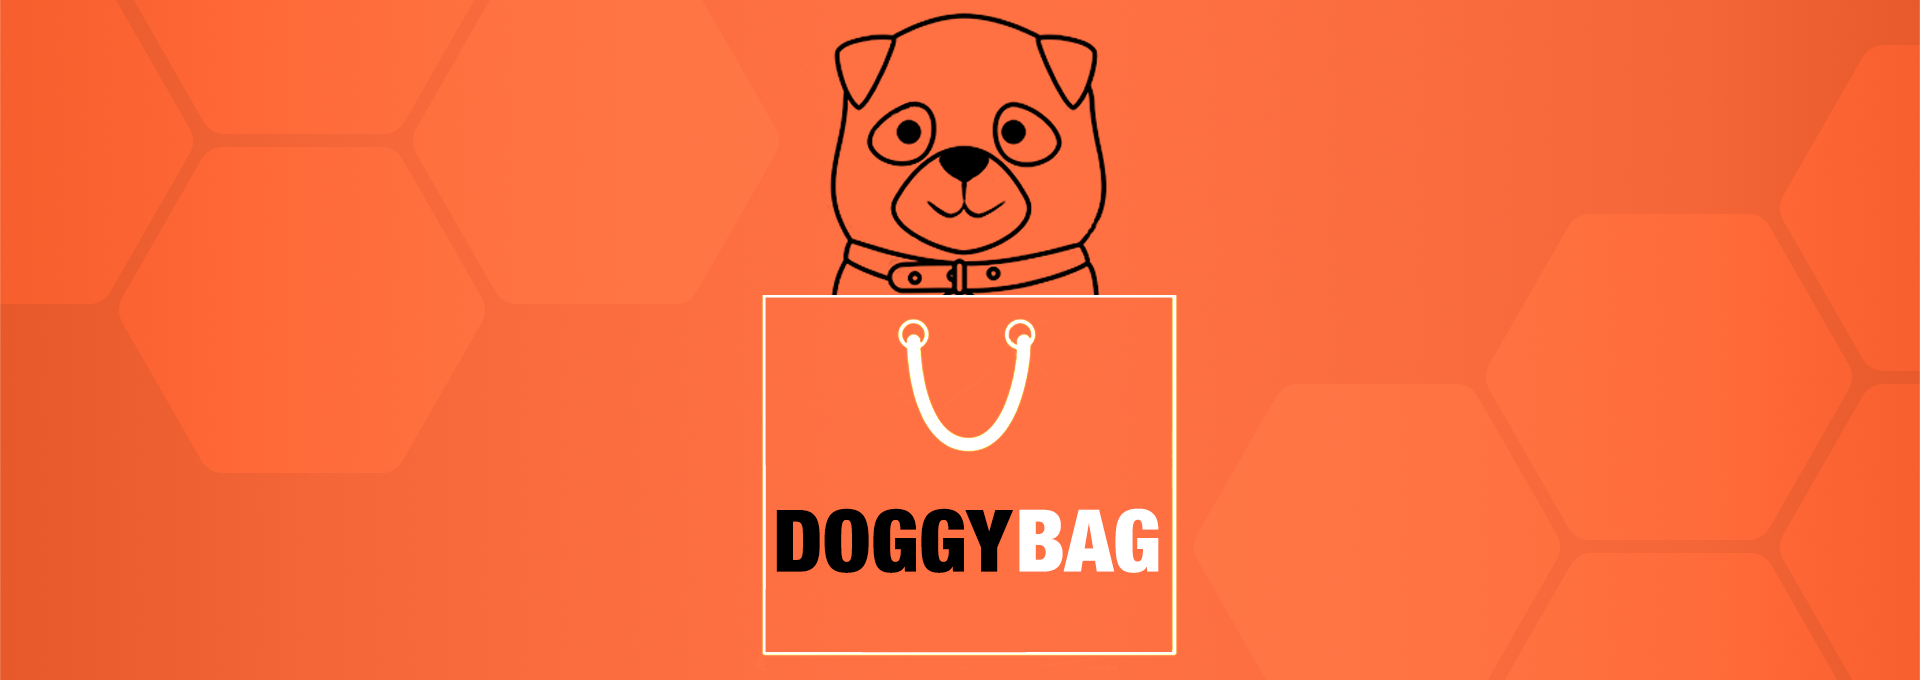 consommer autrement doggy bag